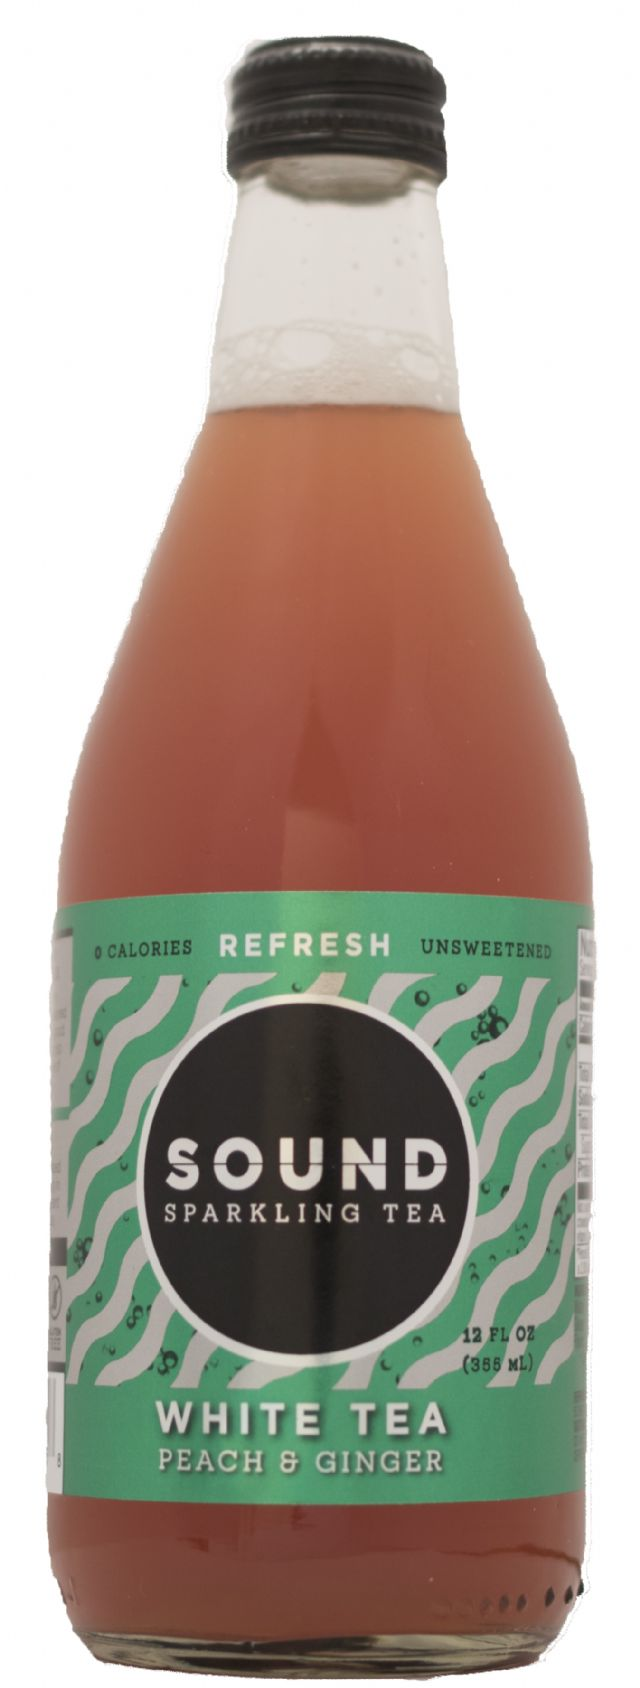 Sound Sparkling Tea: Sound Refresh